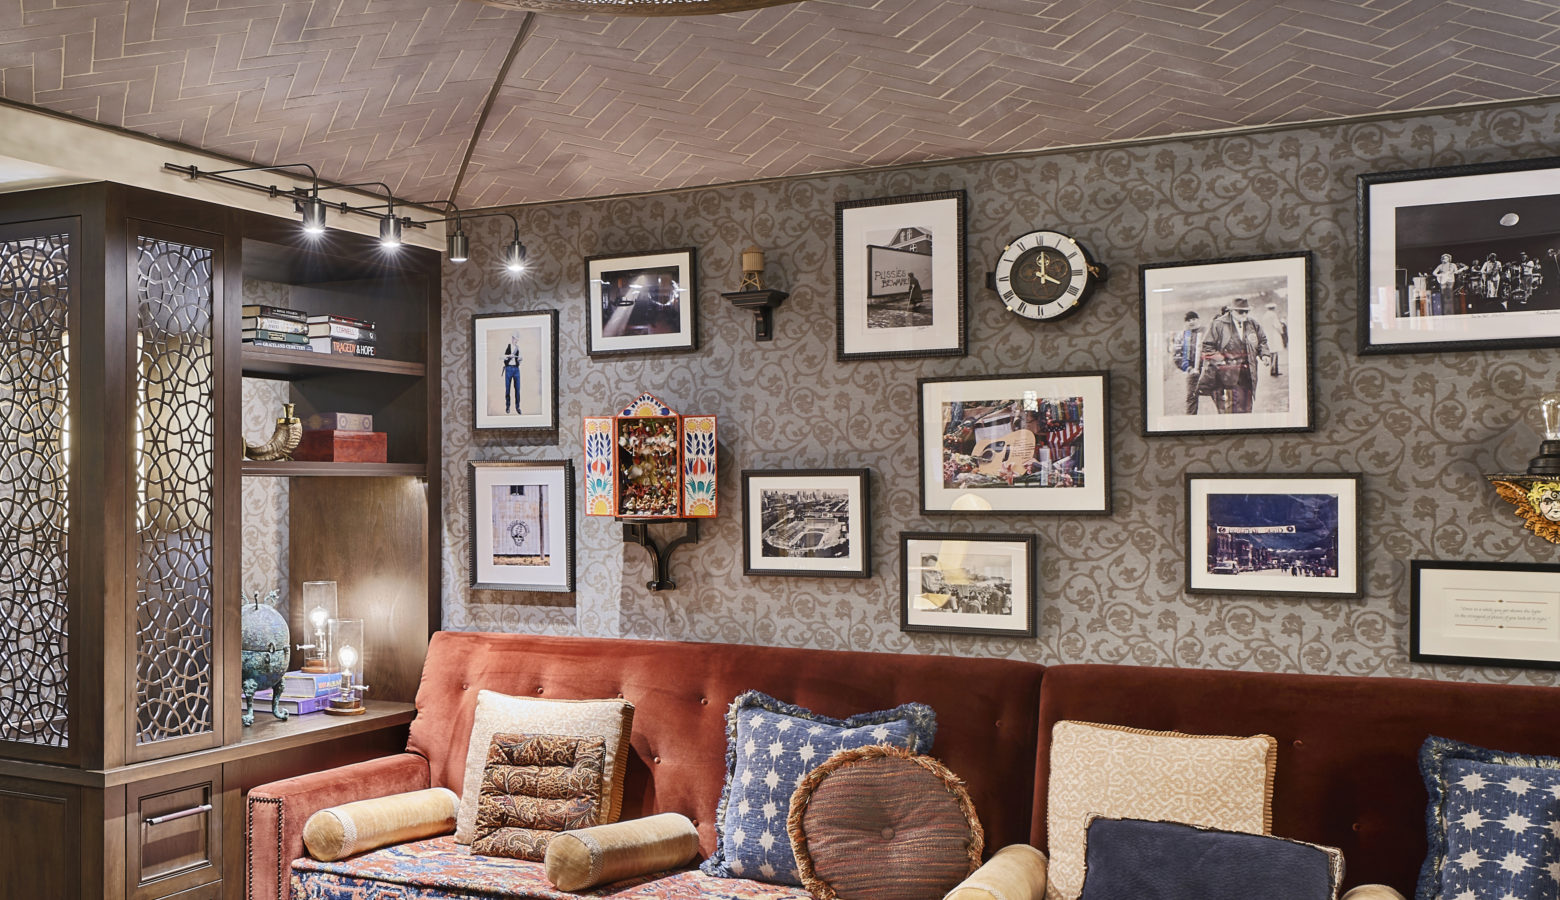 Residential Interior Design:  10 Ideas for Creating Deeply Personal Rooms